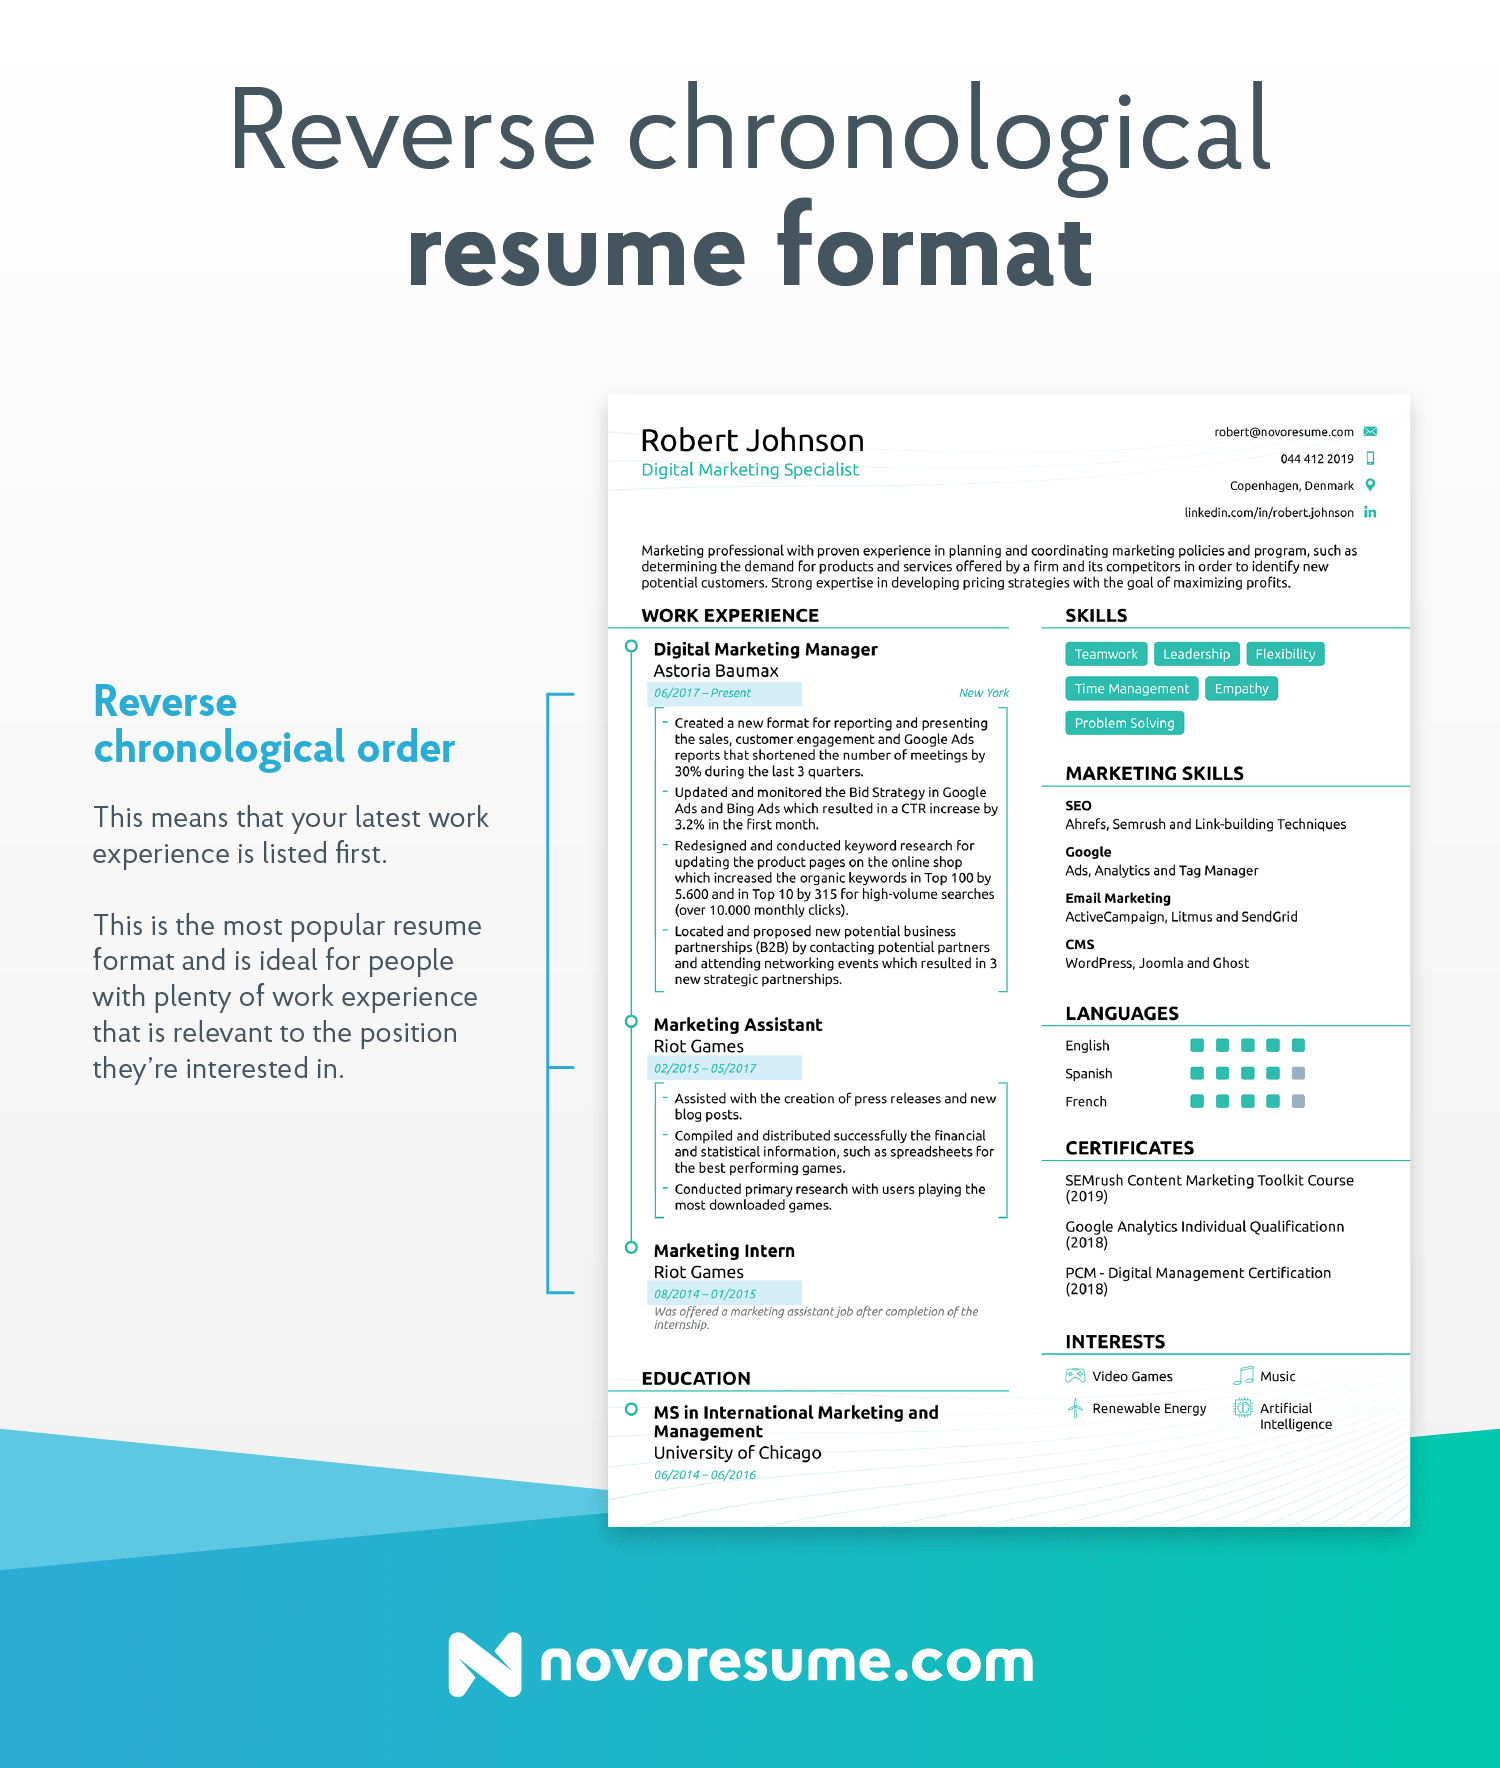 construction project manager reverse chronological resume format